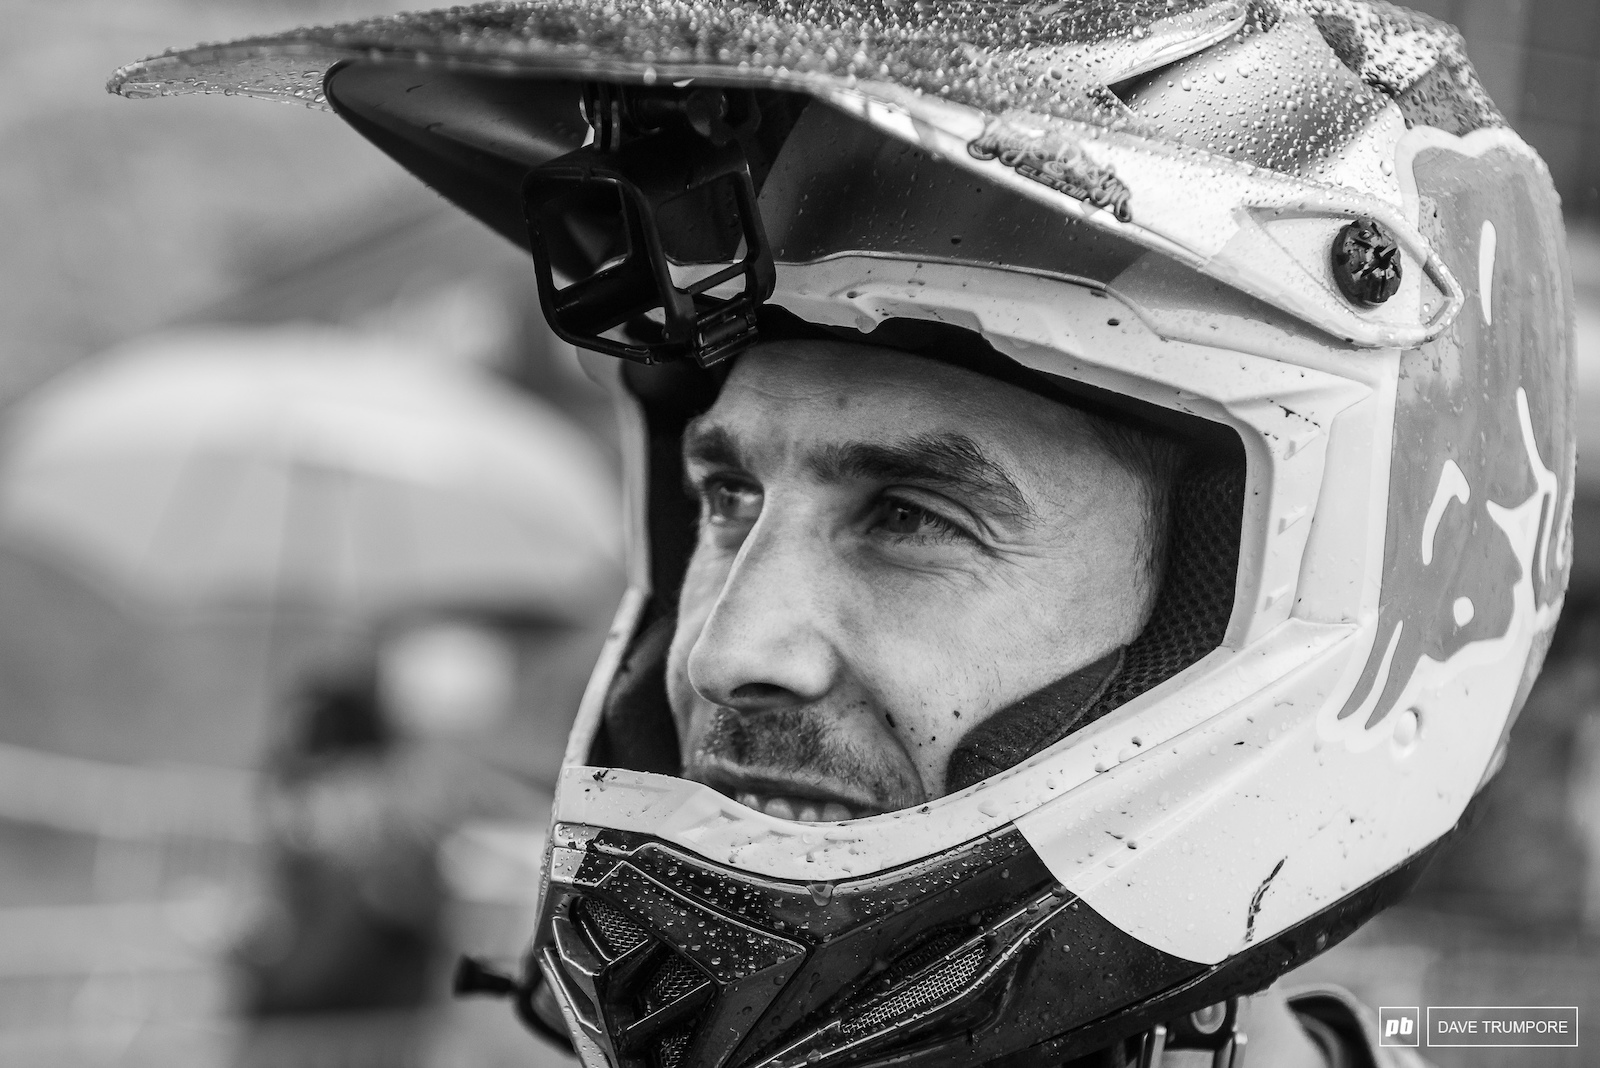 Gee Atherton has found his form once again and played down a blistering run to finish first in qualifying just ahead of Amaury Pierron and Remi Thirion .